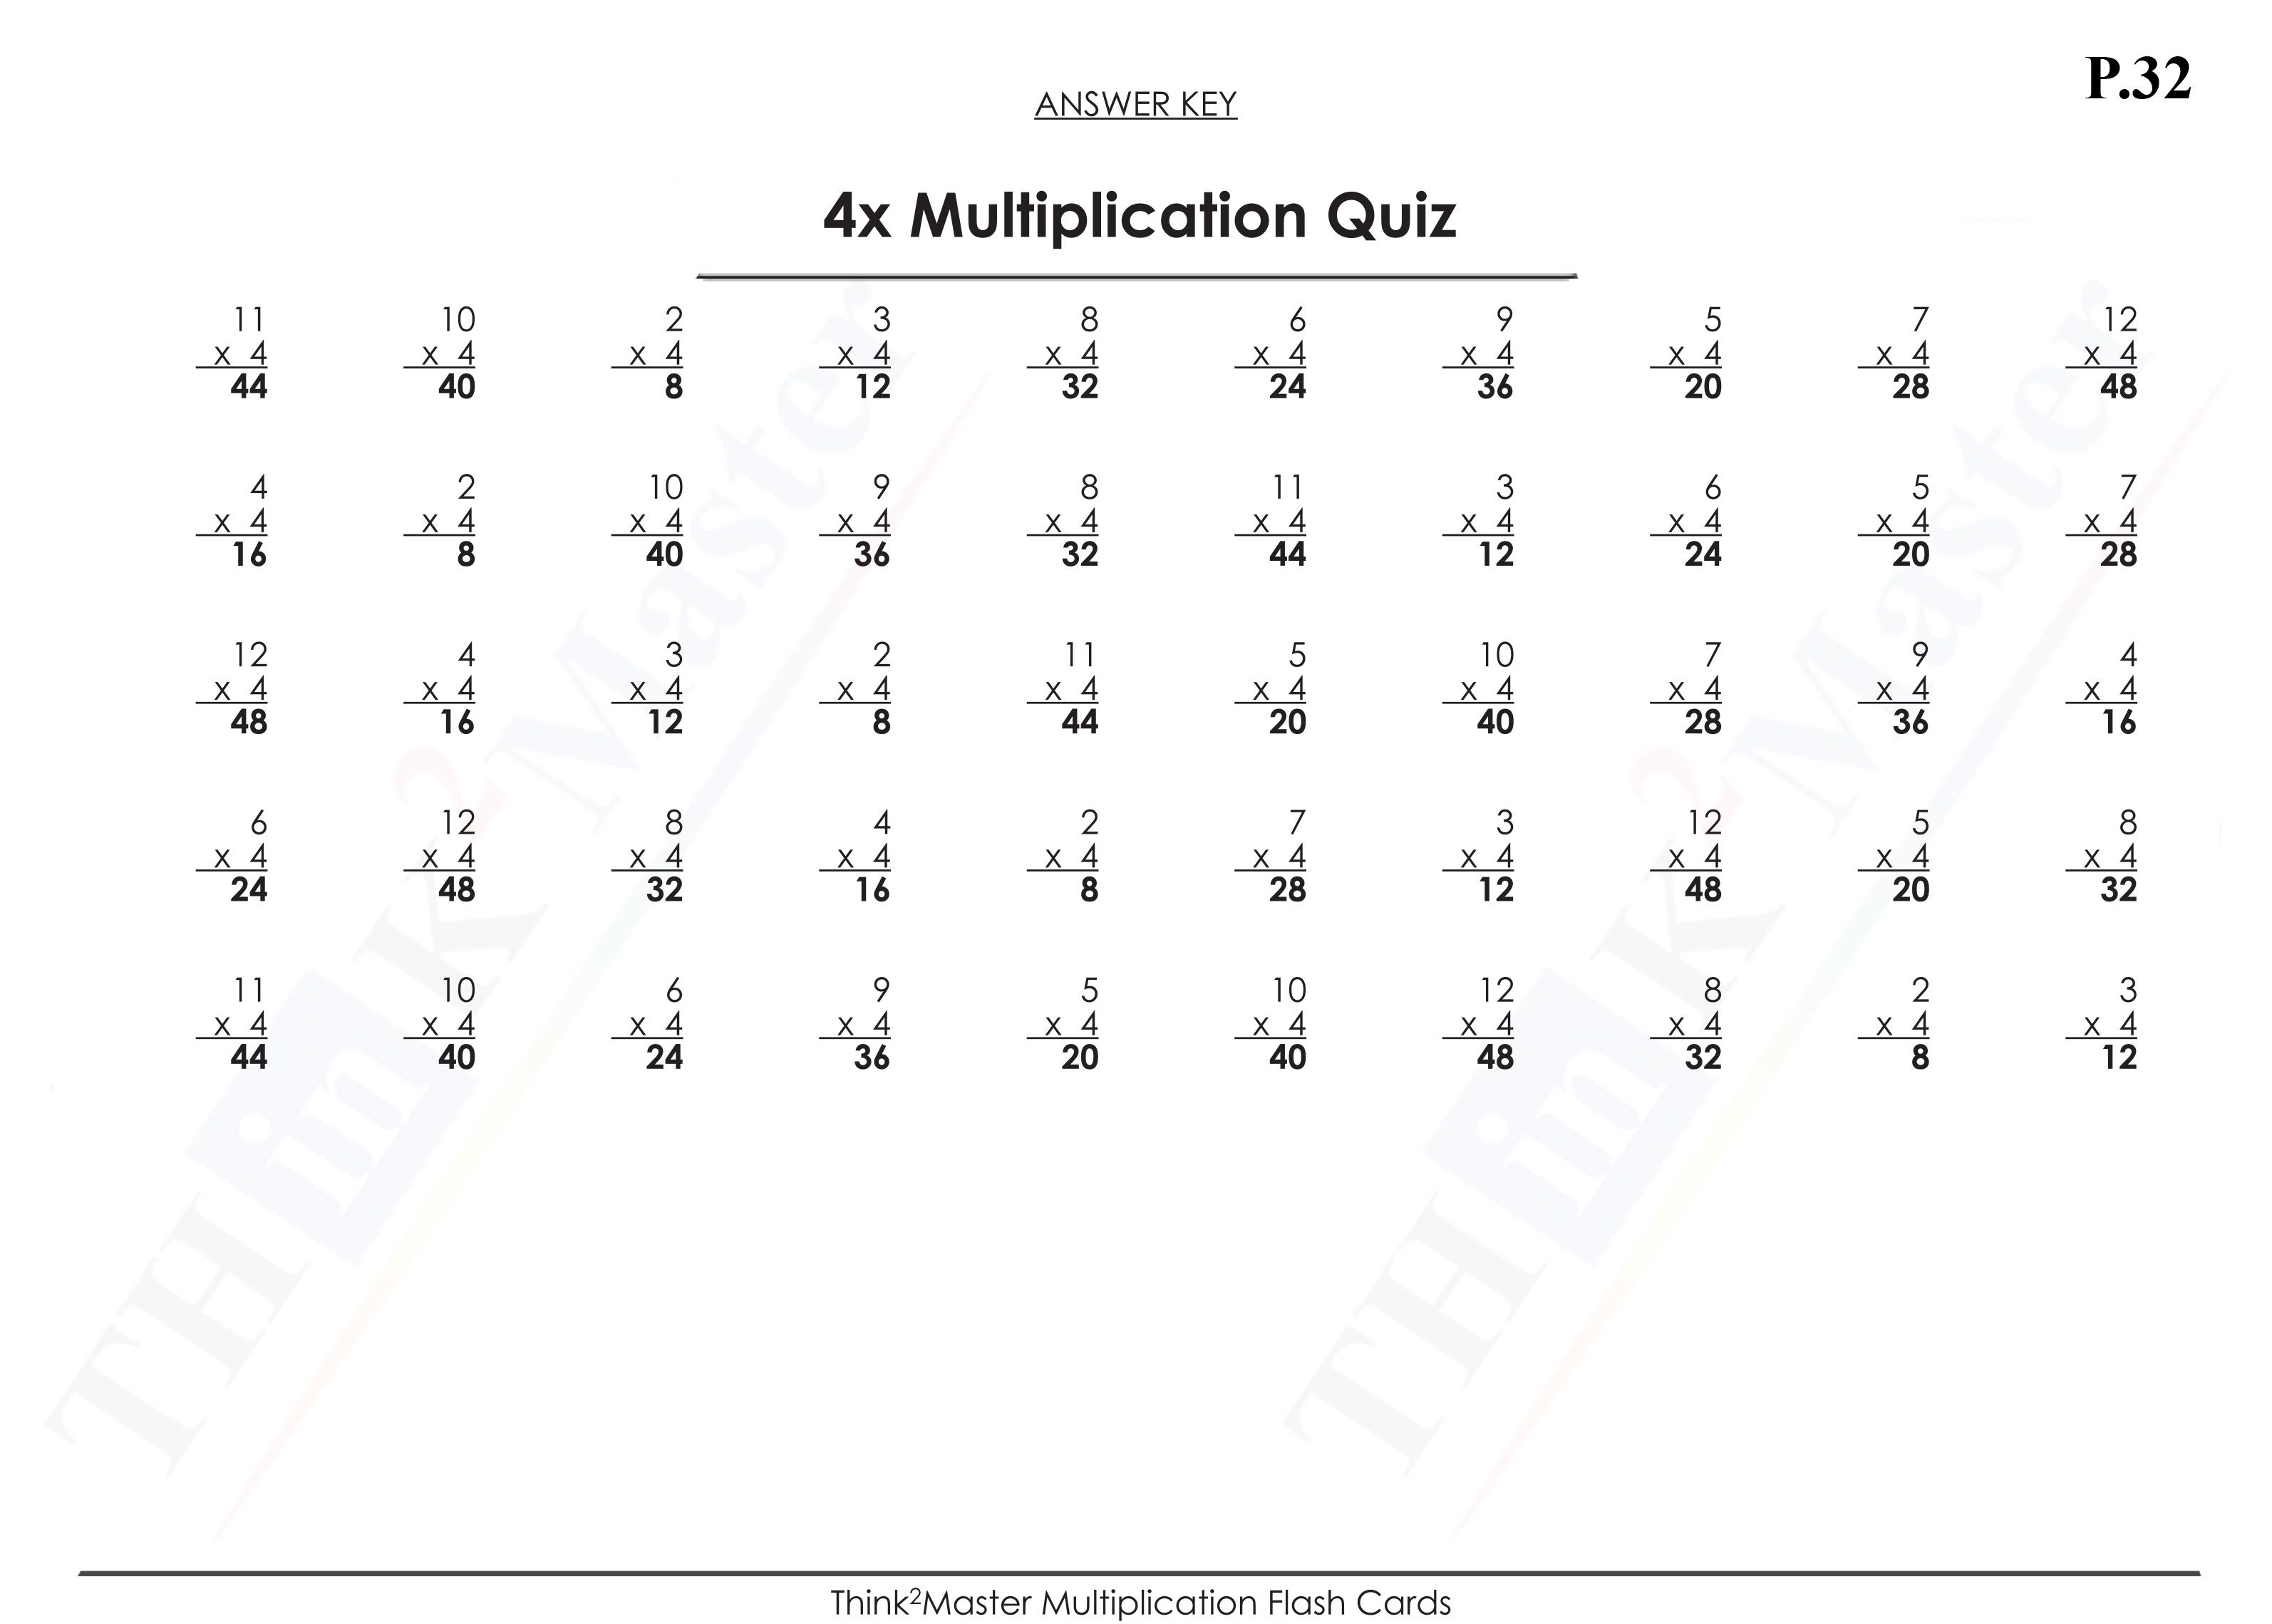 Free Printable 4x Multiplication Quiz Answers